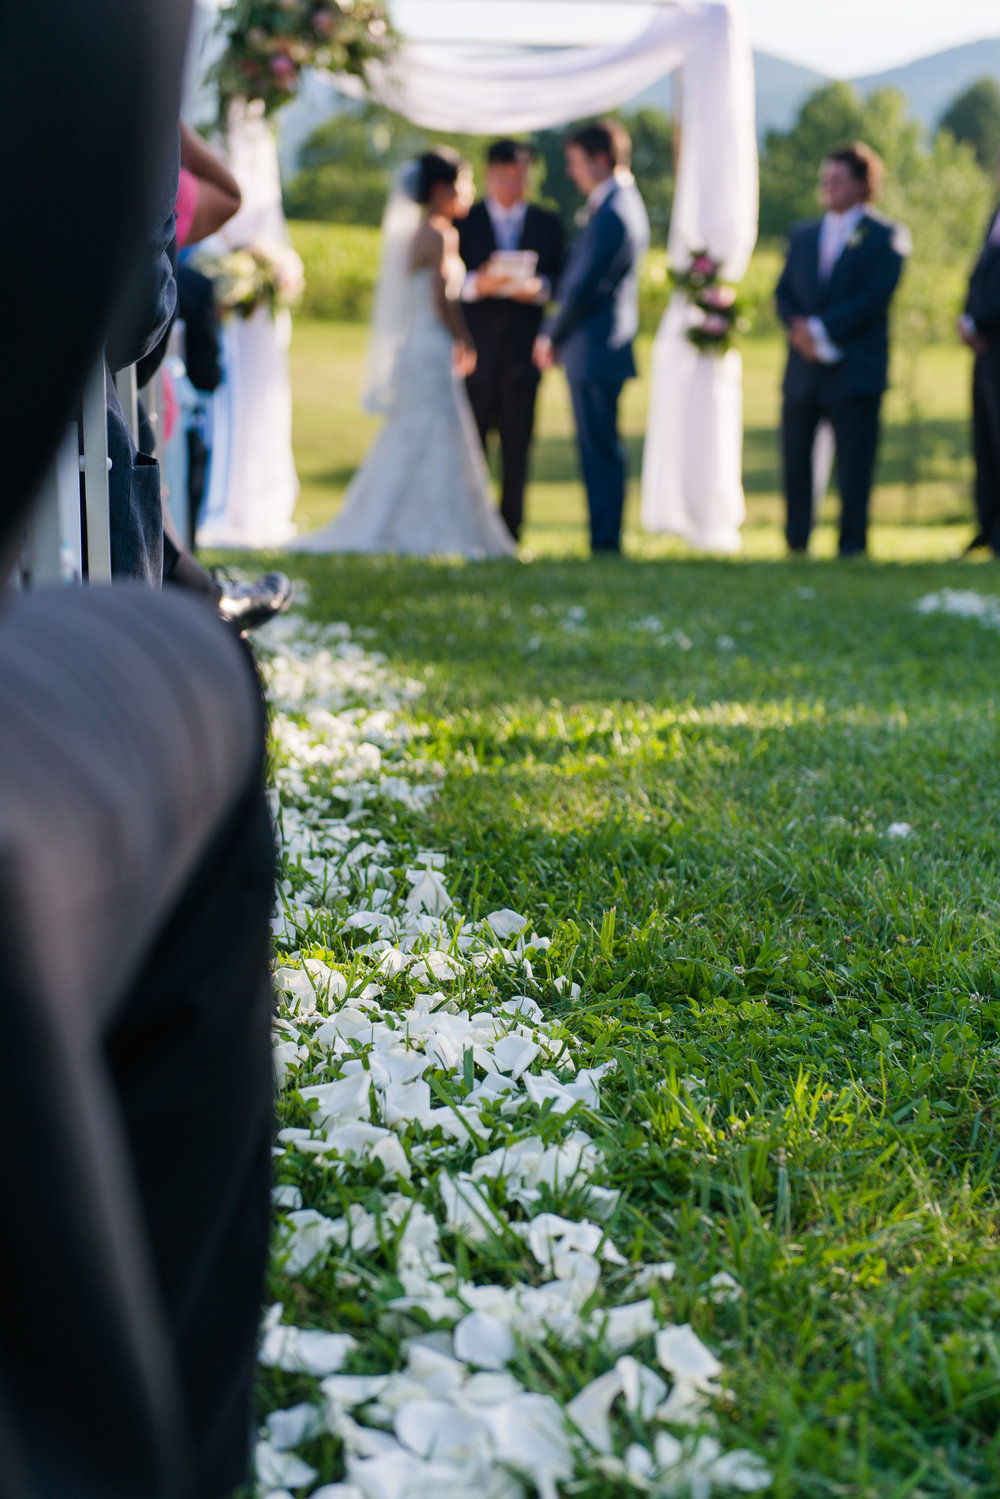 A trail of white flower petals leading to the wedding ceremony at veritas vineyards near charlottesville, virginia